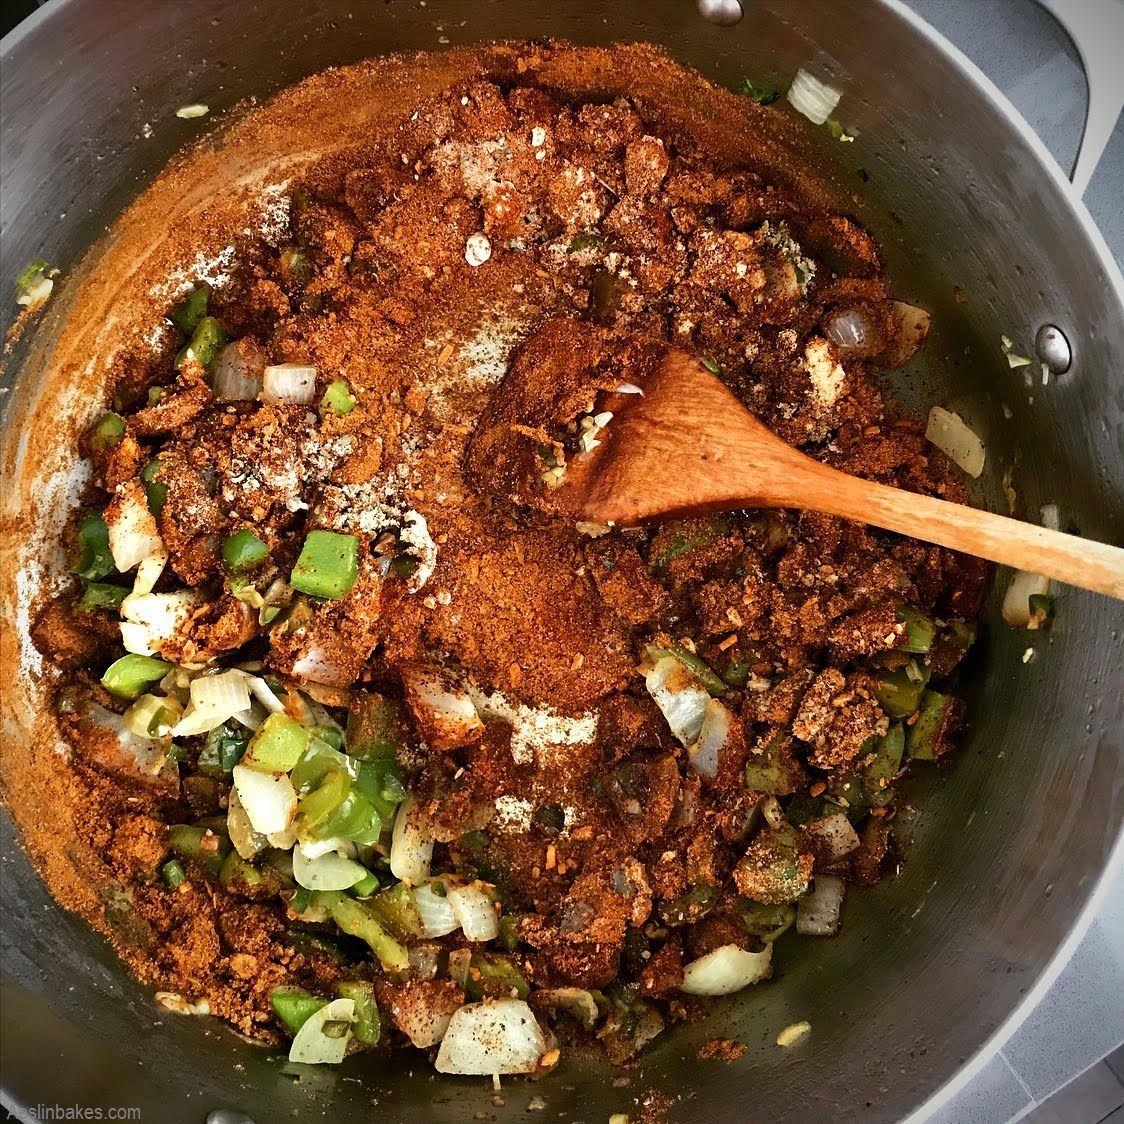 cook the chili spices until warm and fragrant